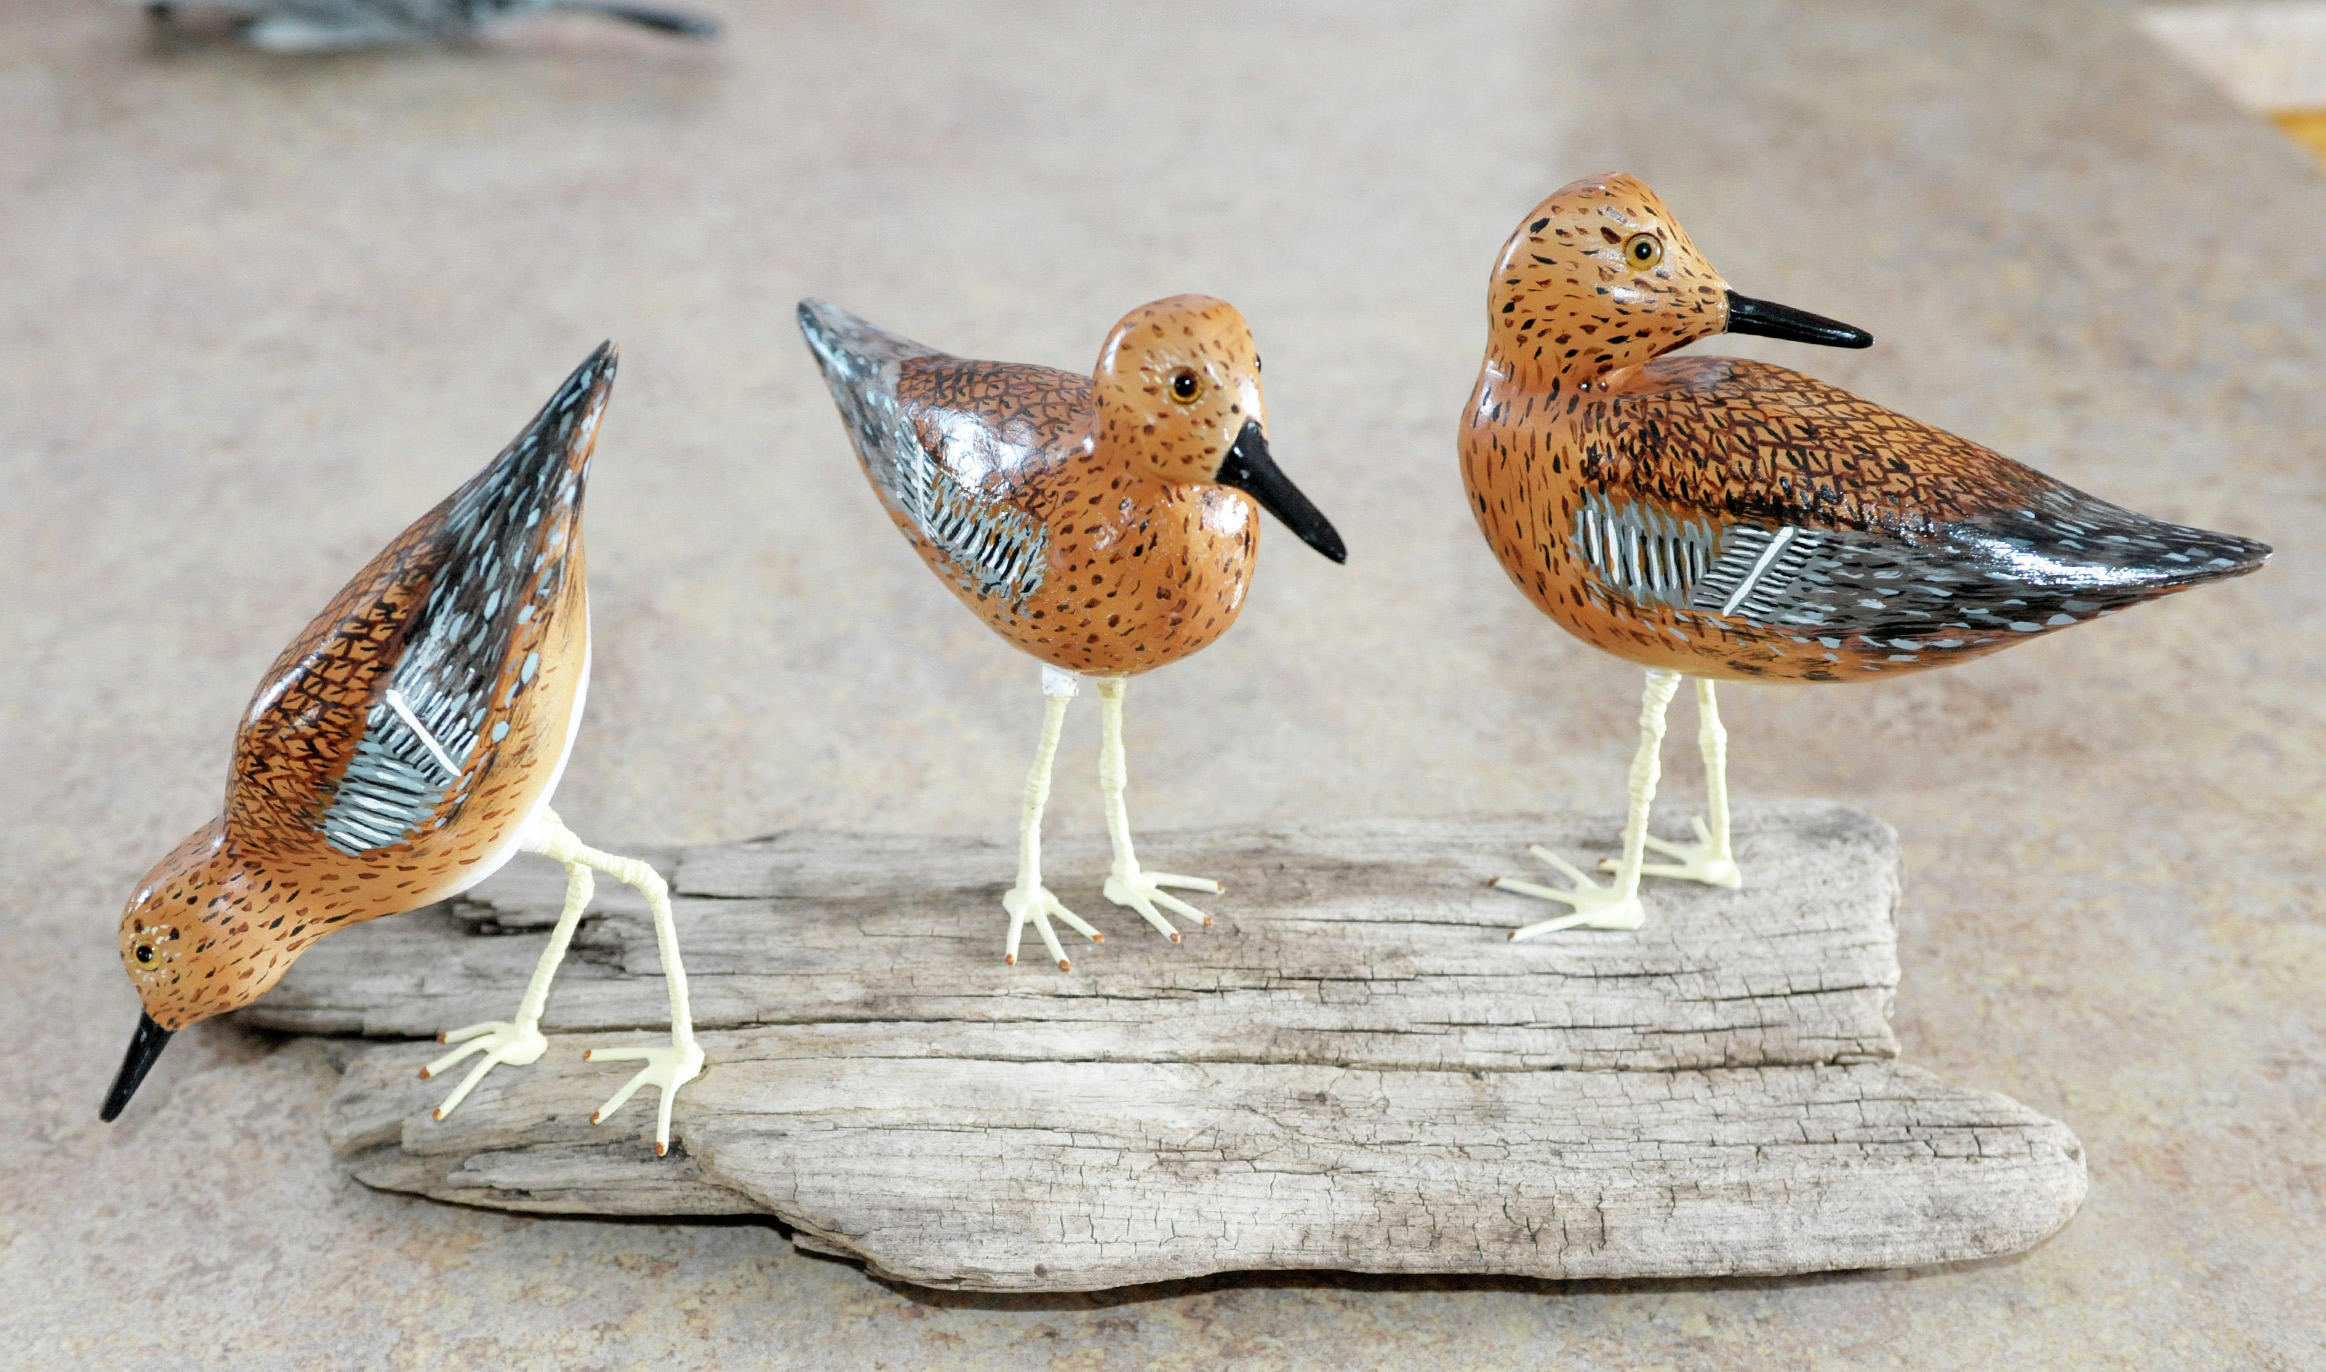 In recent years, Hedlund has expanded his work to include more decorative carvings such as these birds. (Lowell Anderson / Echo Press)